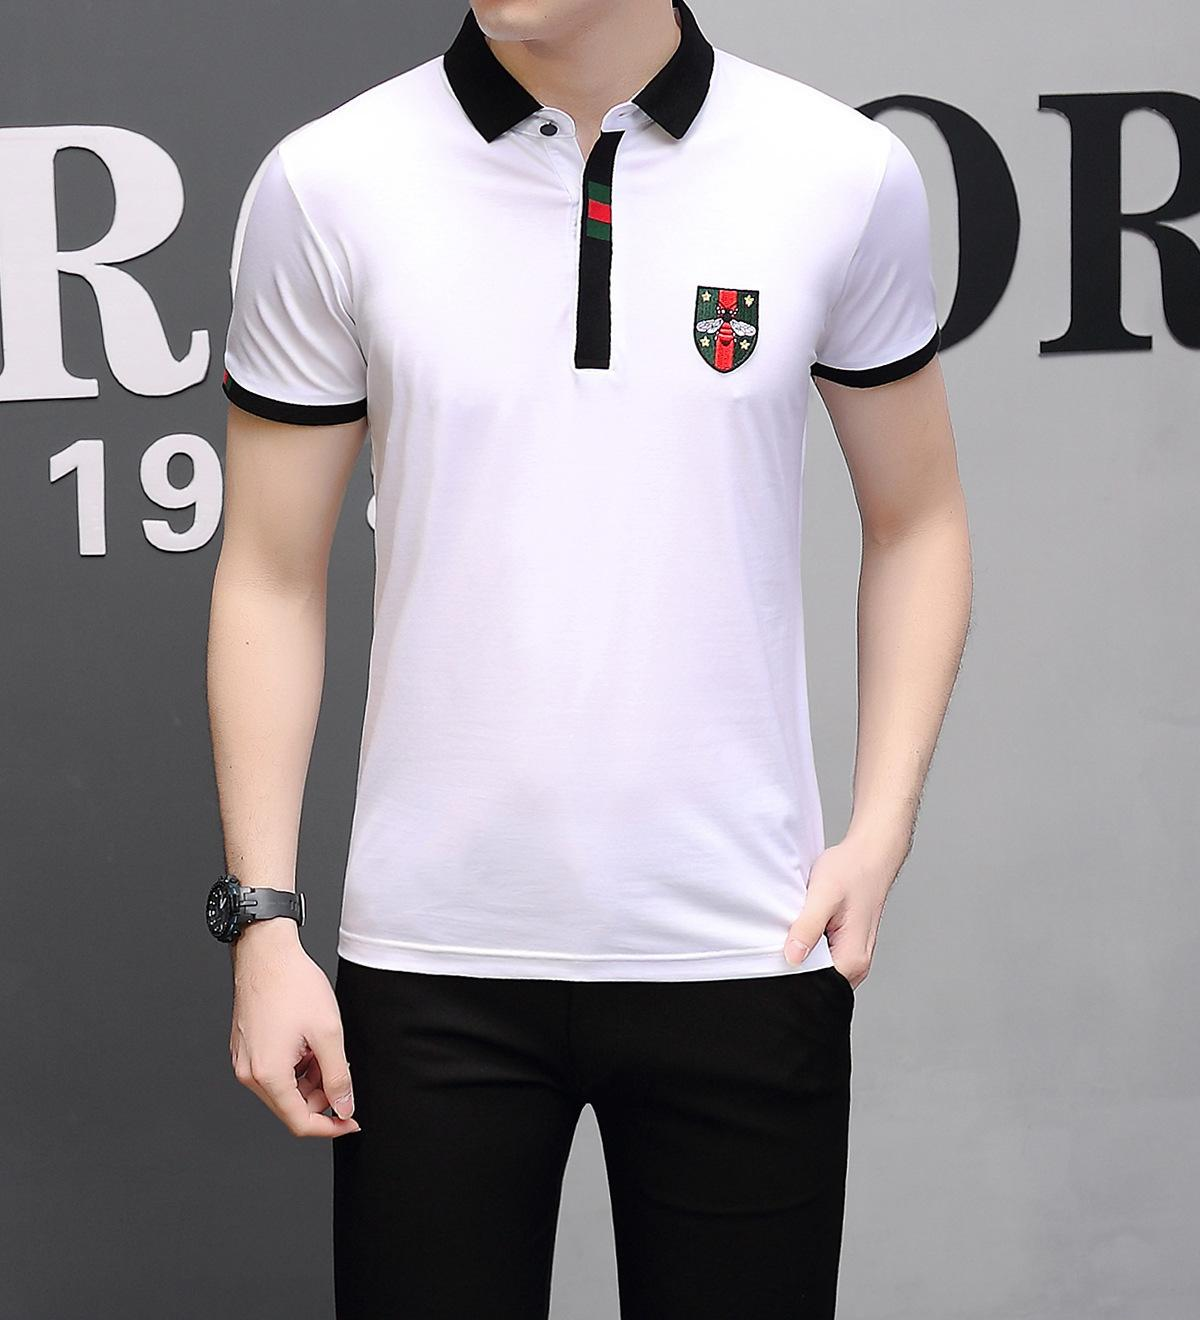 0009a1a910d4 Time Man Short Sleeve Spring Summer New Products Men's Wear Half Sleeve  Pure Cotton Net Color Back Collar Easy T T-shirt